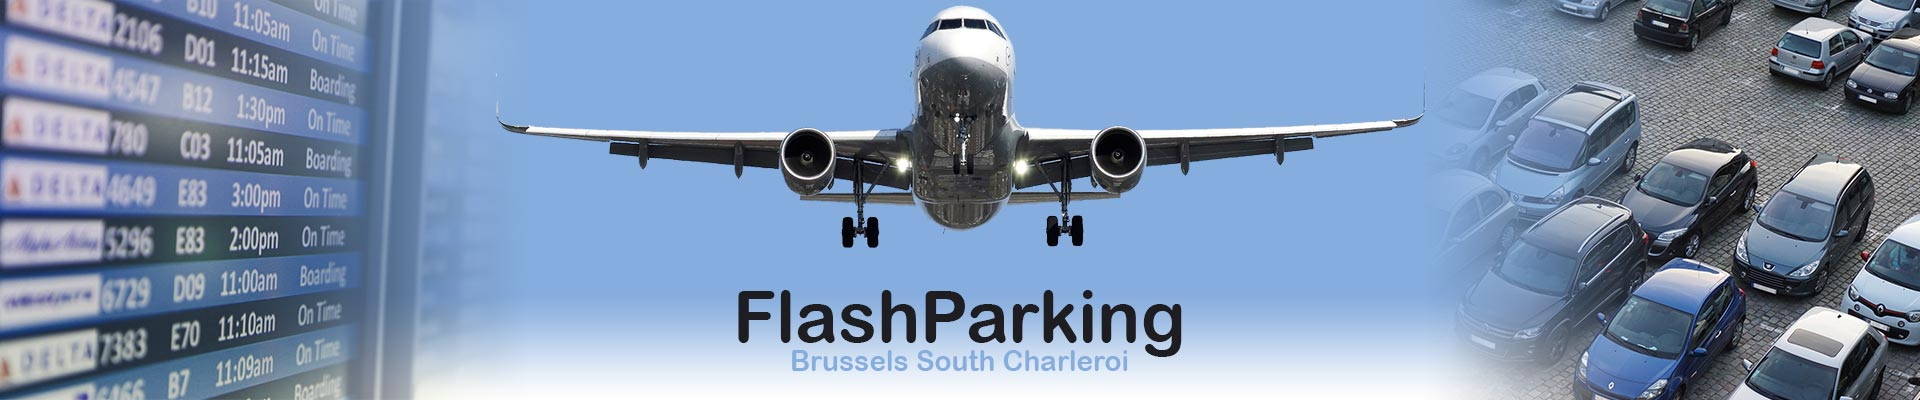 Flash parking aéroport de Aéroport Charleroi